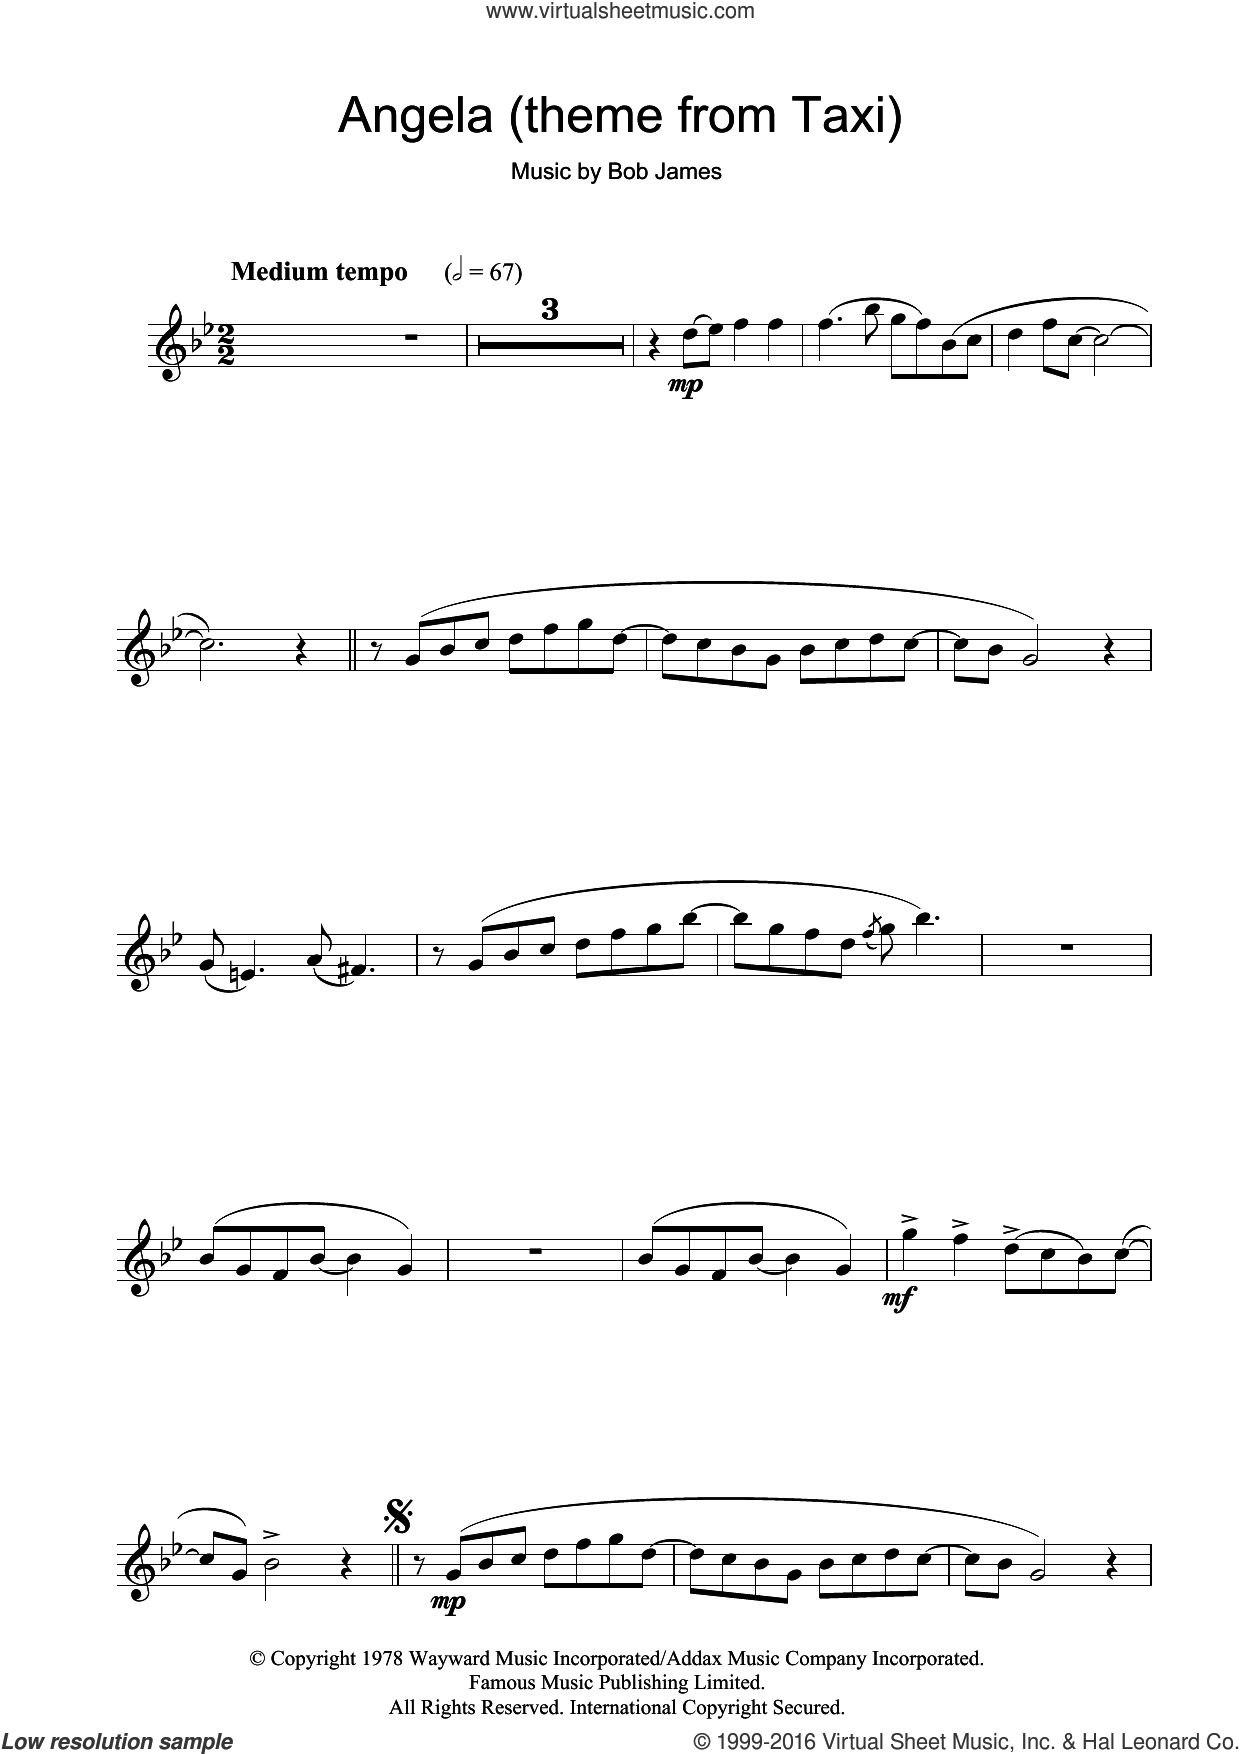 Angela (theme from Taxi) sheet music for clarinet solo by Bob James. Score Image Preview.